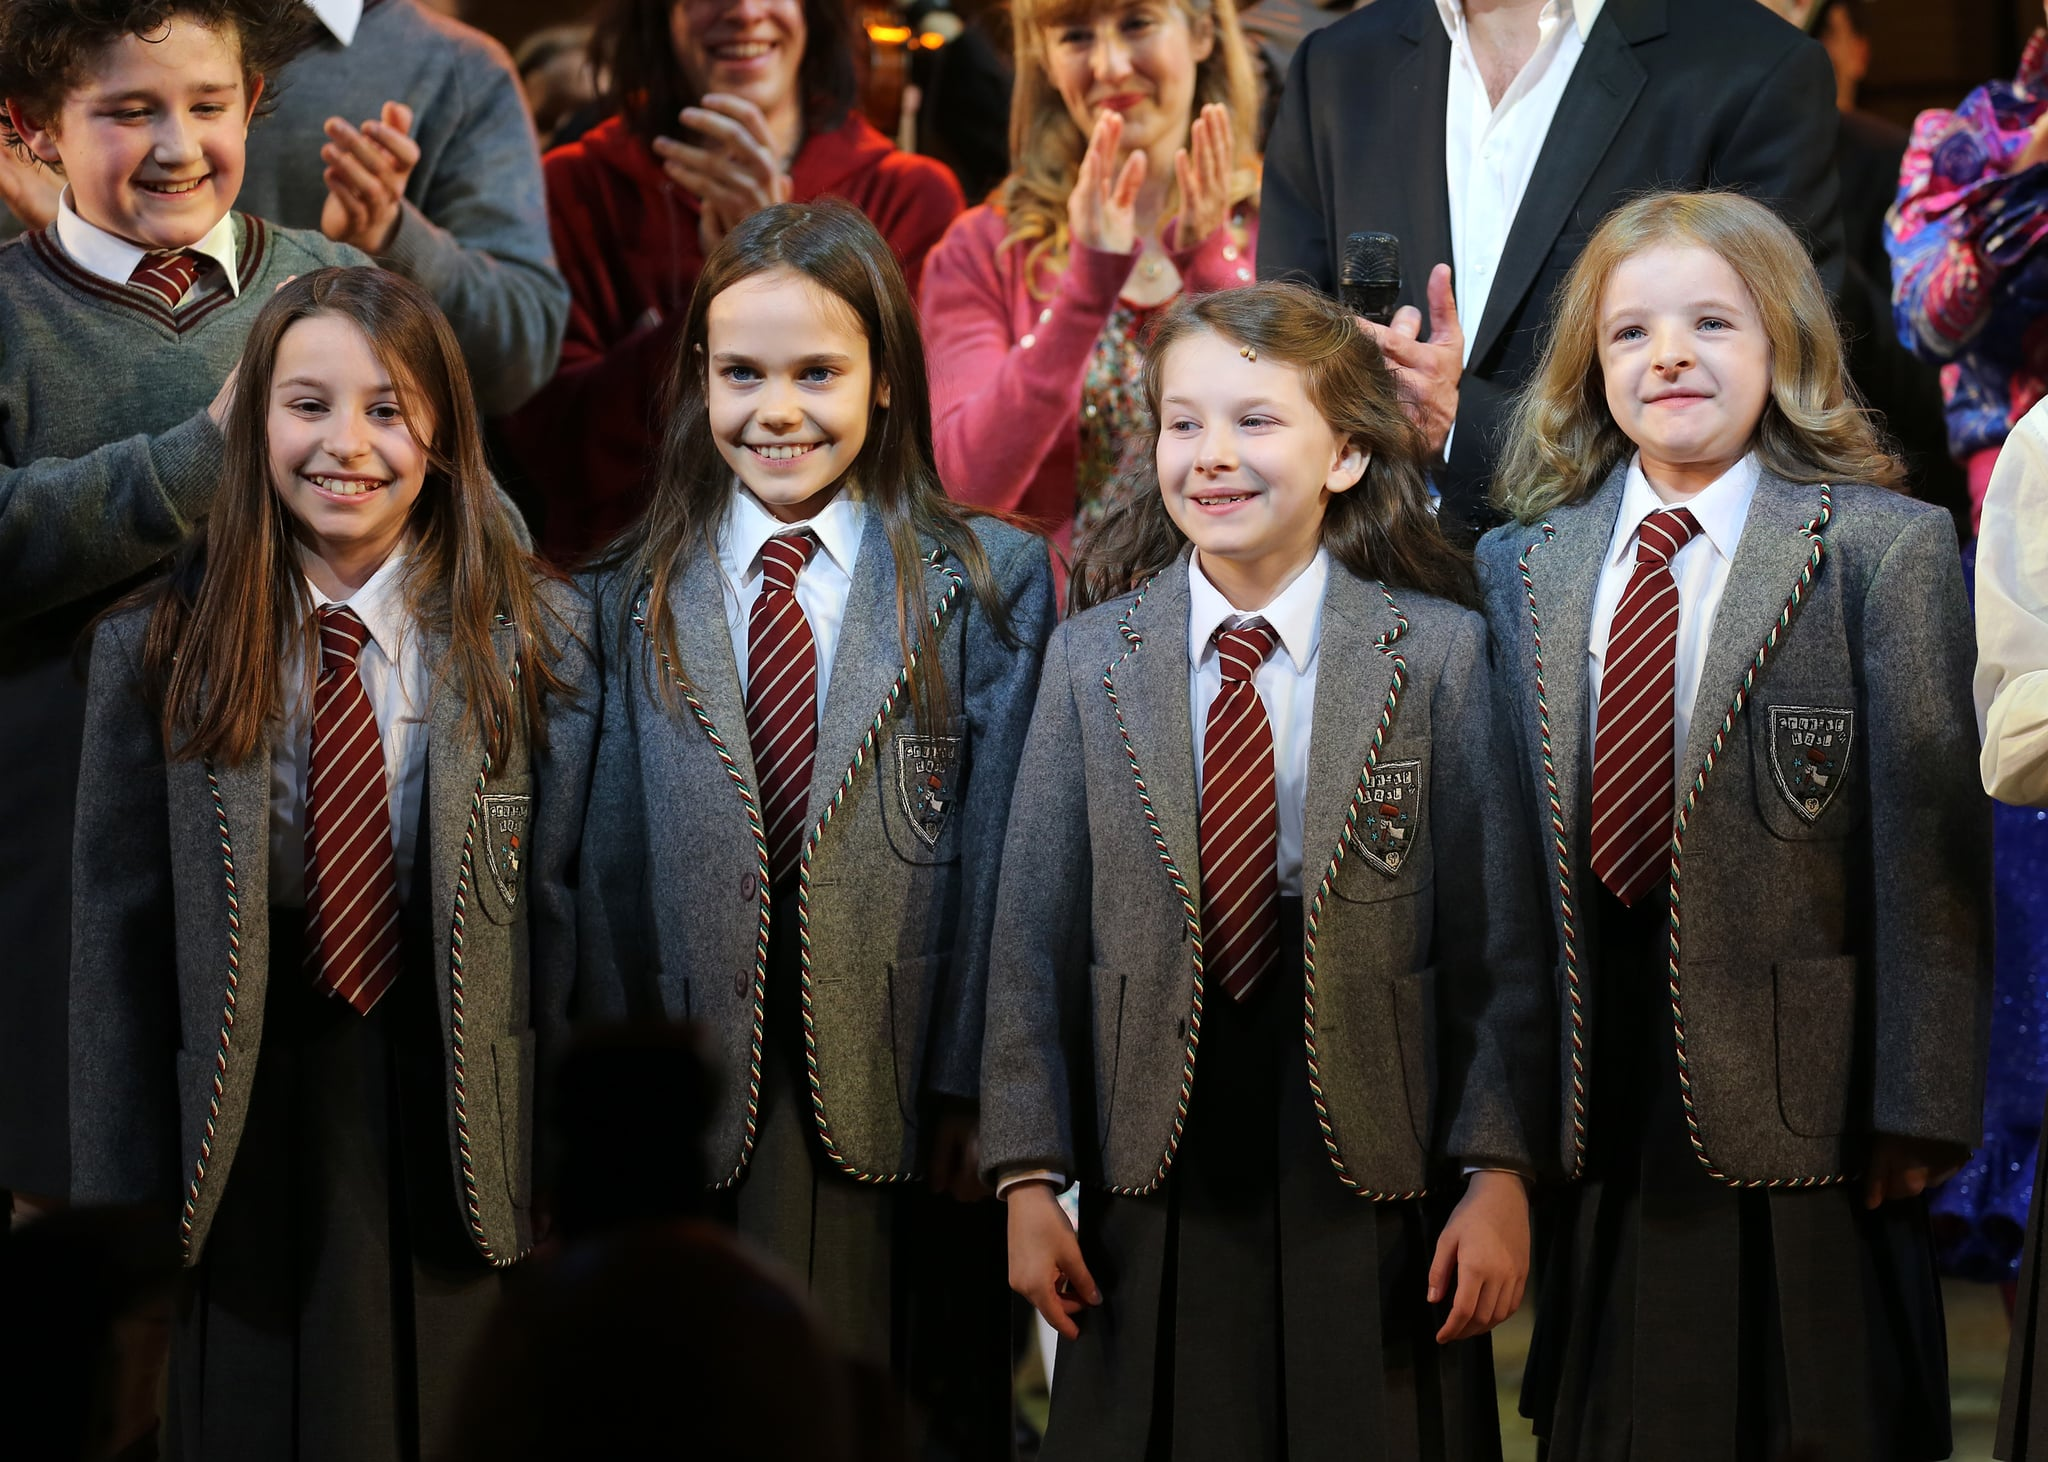 Matildas: Sophia Gennusa, Oona Laurence, Bailey Ryon & Milly Shapiro during the Broadway Opening Night Performance Curtain Call for 'Matilda The Musical' at the Shubert Theatre in New York City on 4/11/2013 (Photo by Walter McBride/Corbis via Getty Images)